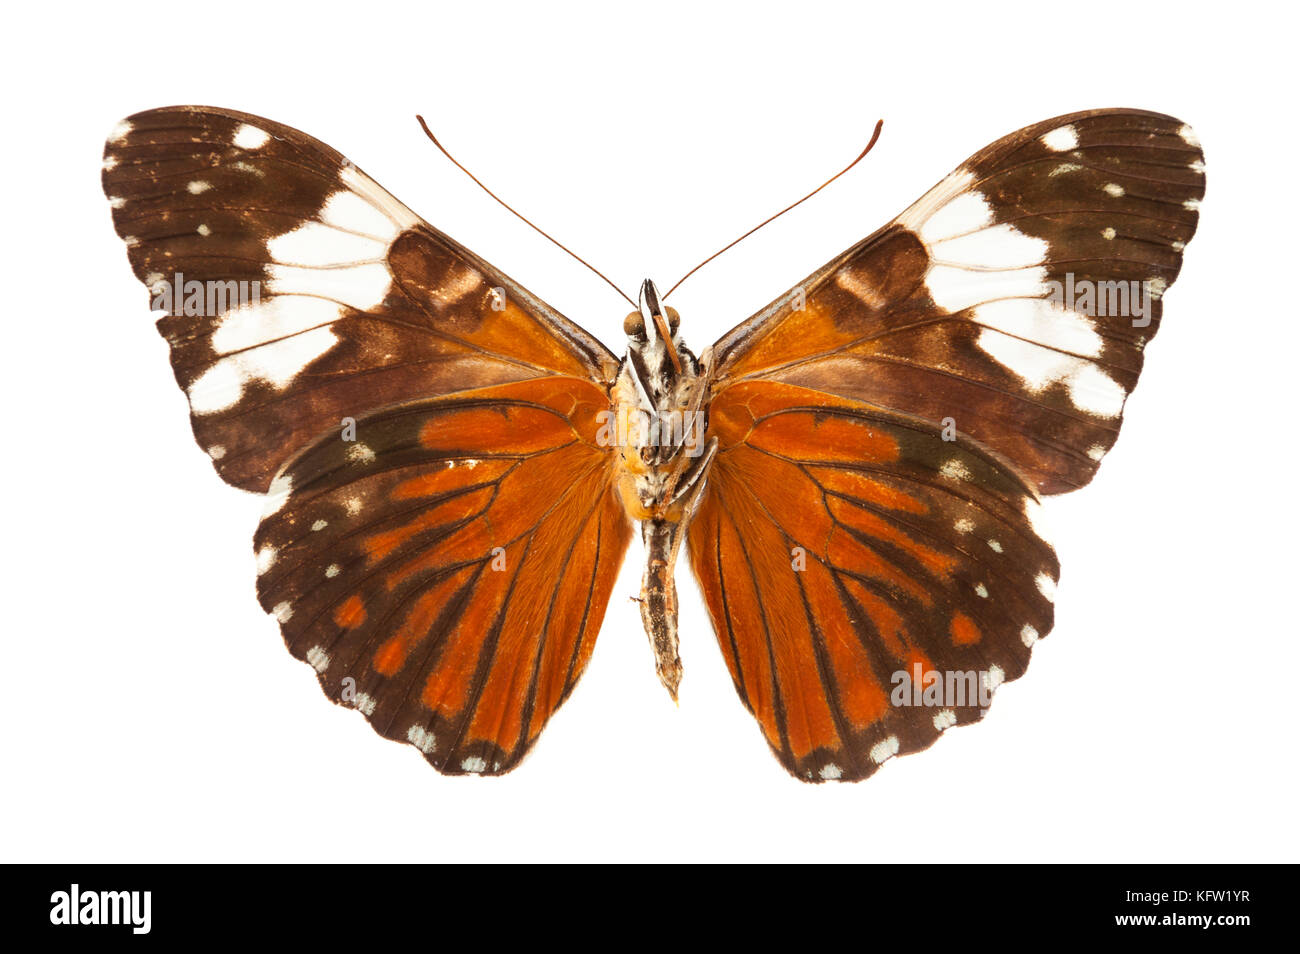 Vintage butterfly isolated on white background Stock Photo